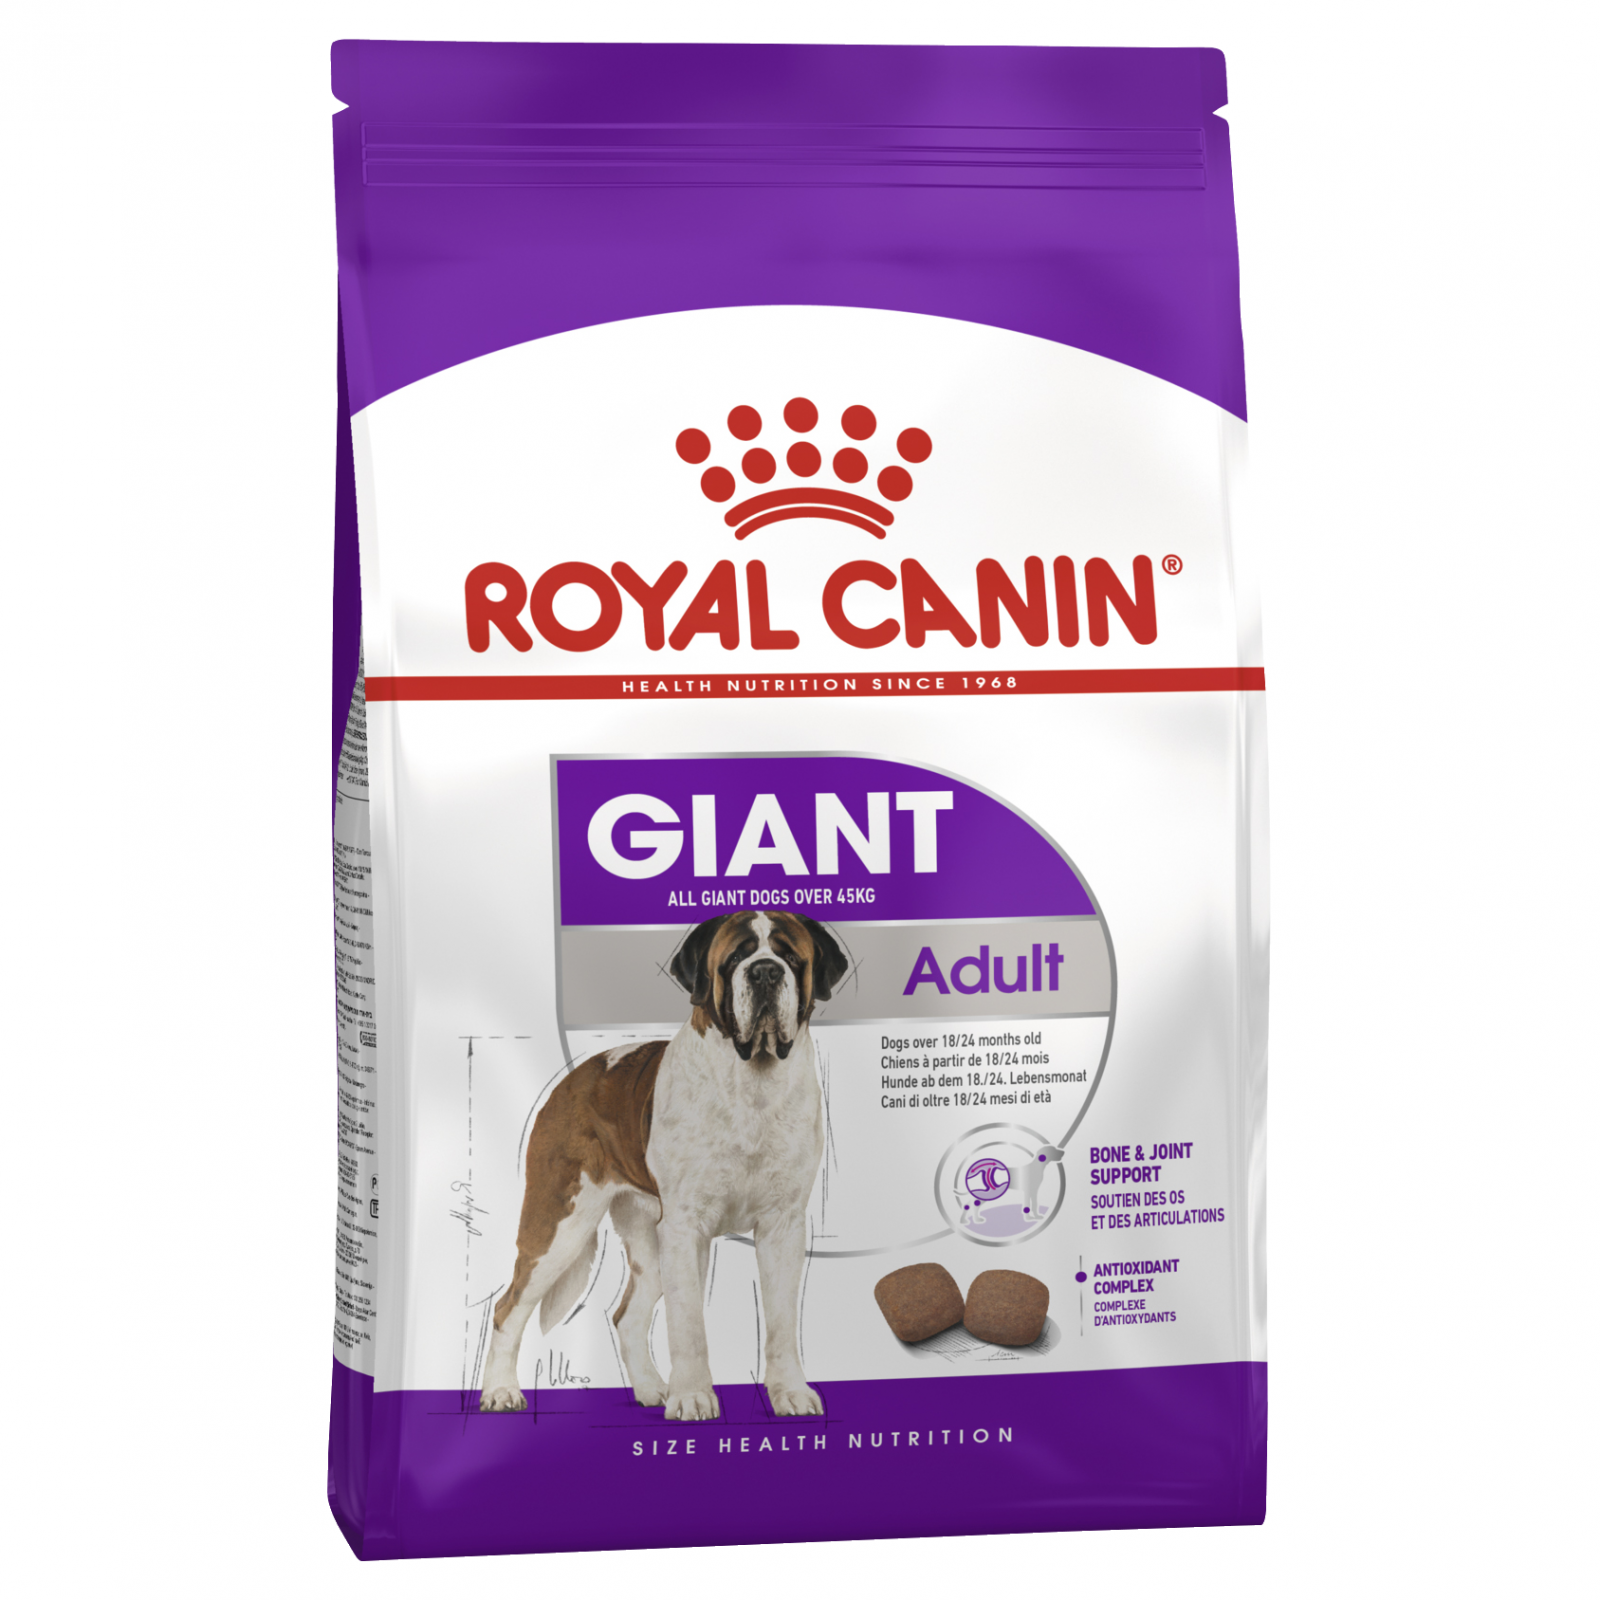 Royal Canin Royal Canin Giant Adult Dry Dog Food